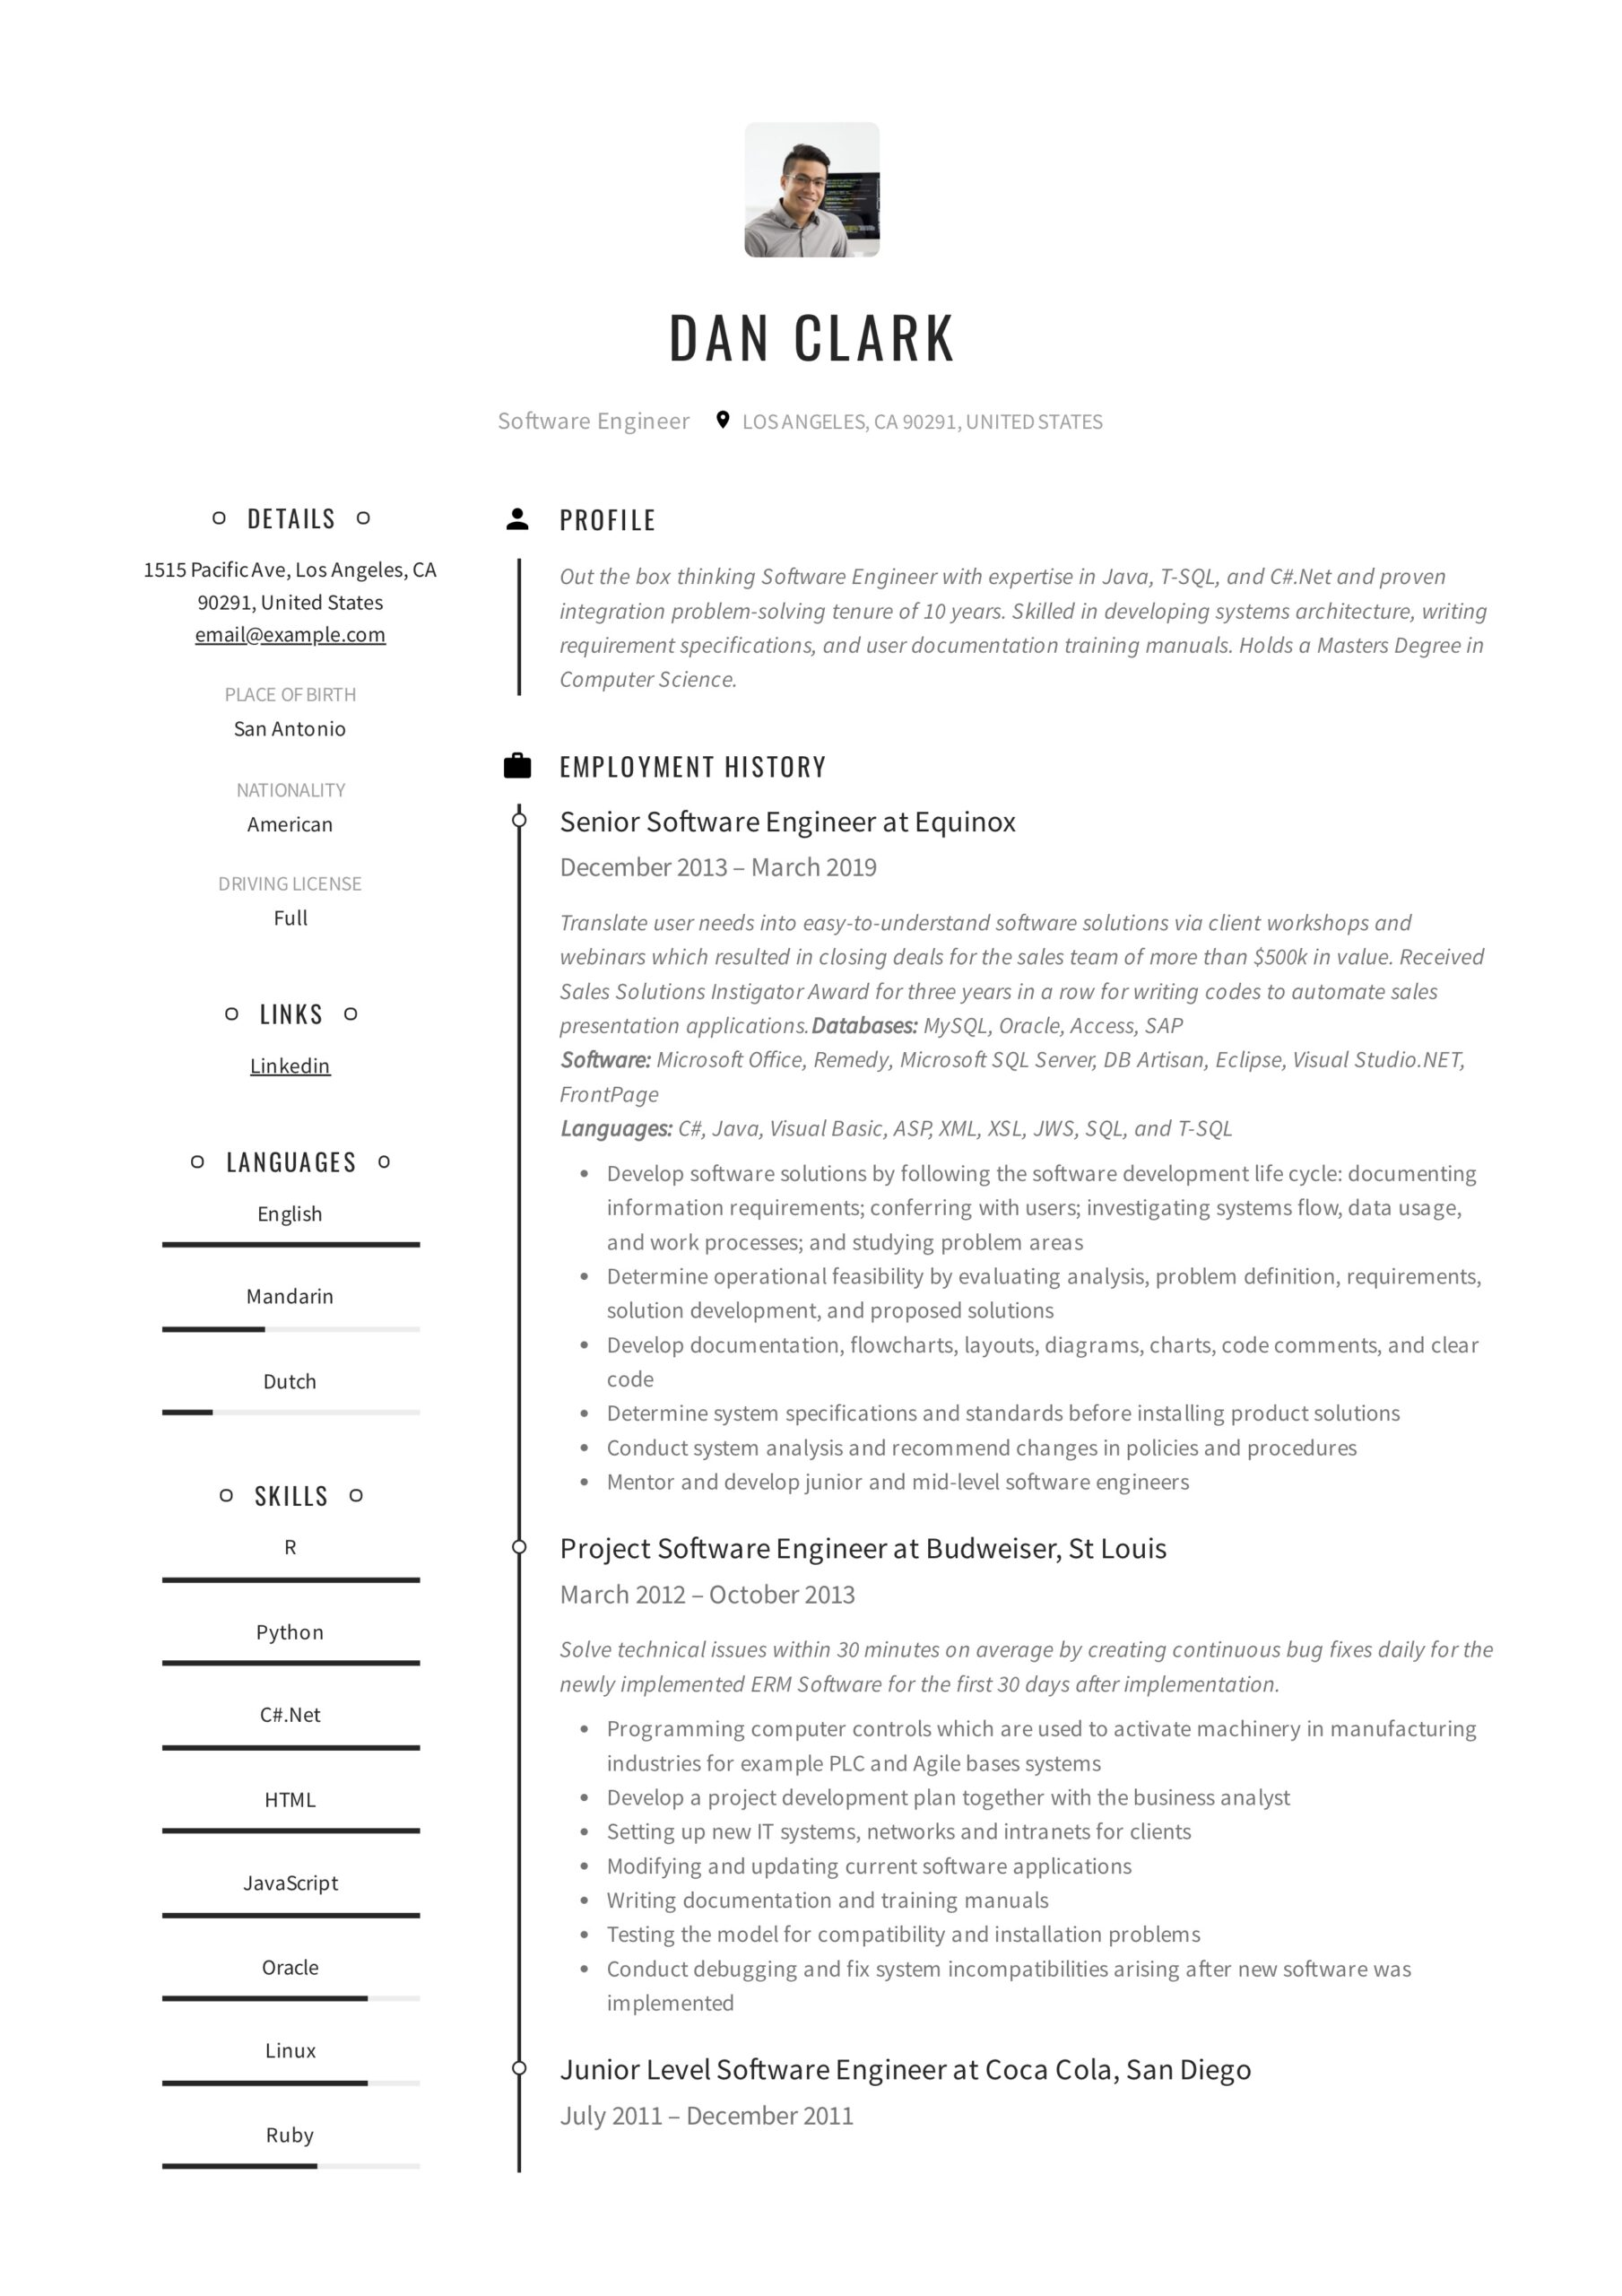 resume templates pdf word free downloads and guides dan software engineer barista example Resume Free Resume Templates Pdf